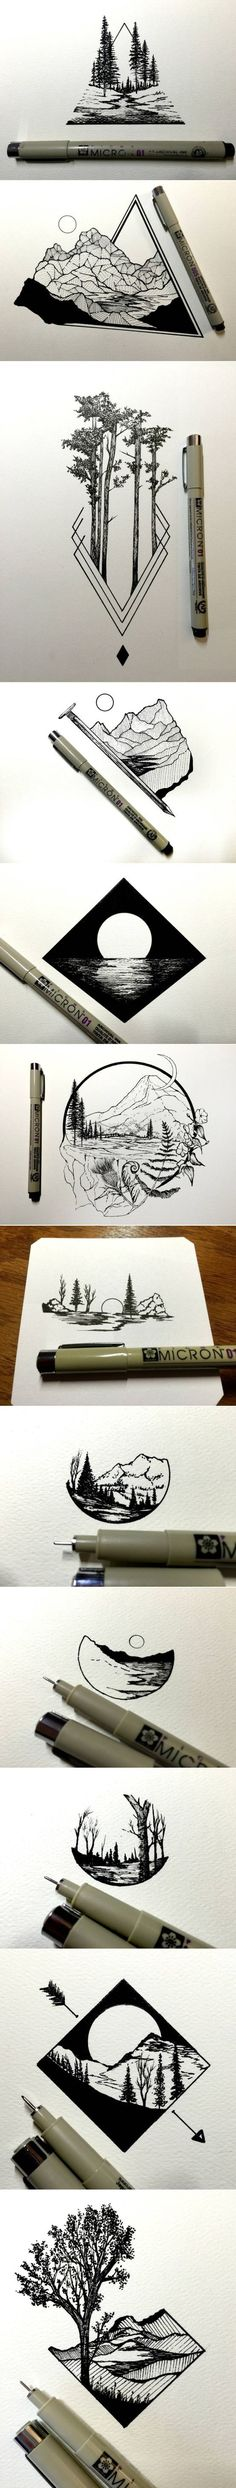 111 Insanely Creative Cool Things to Draw Today #LandscapeSketch